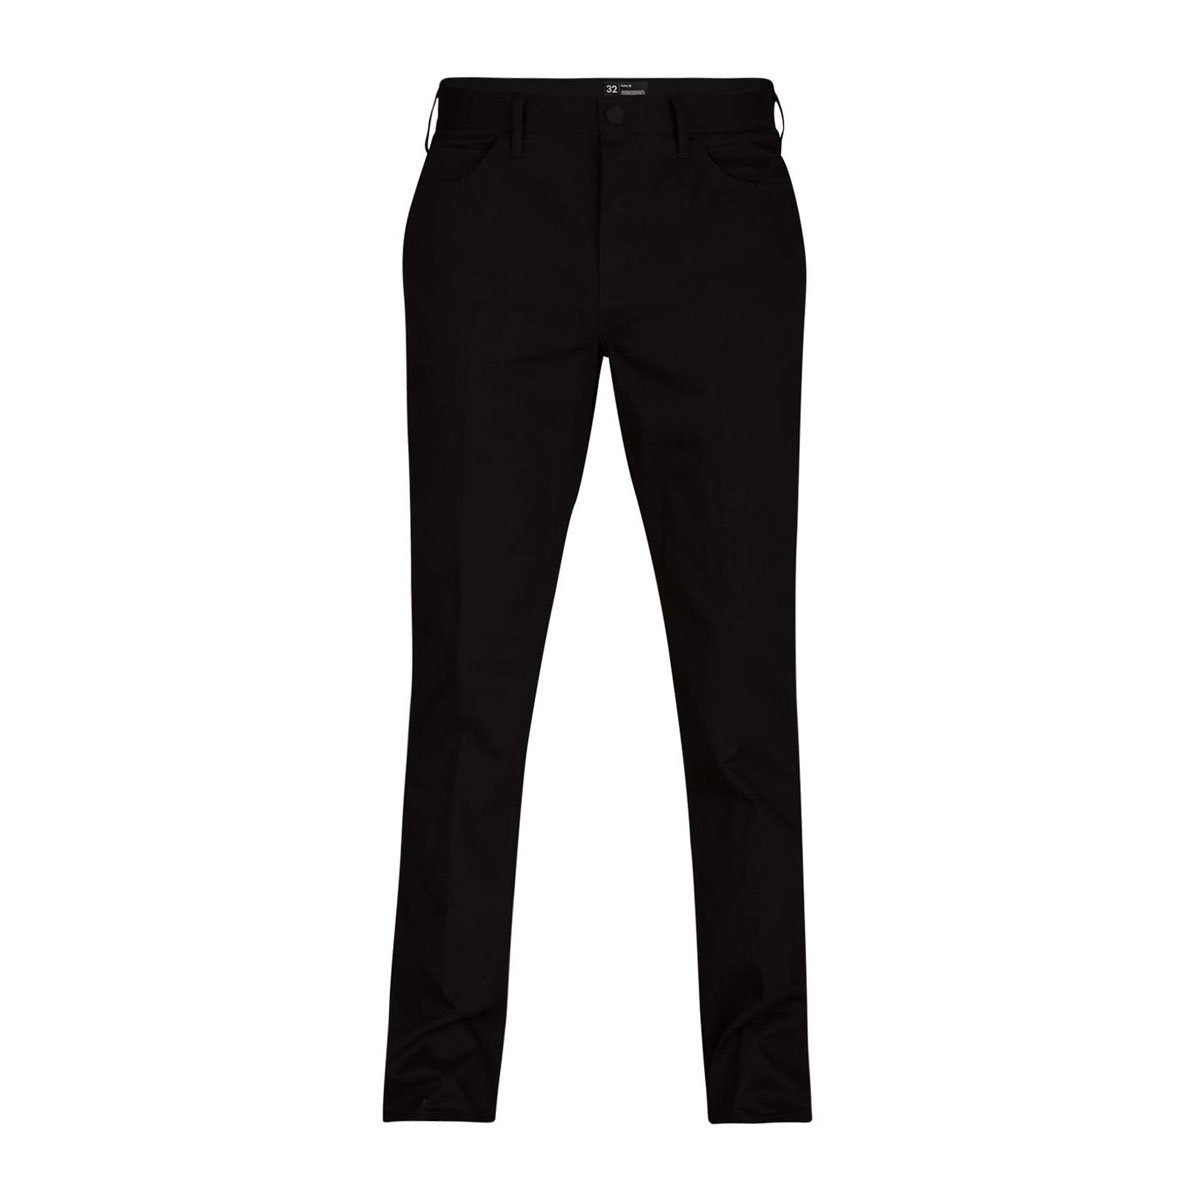 5 PKT BEDFORD CORD PANT